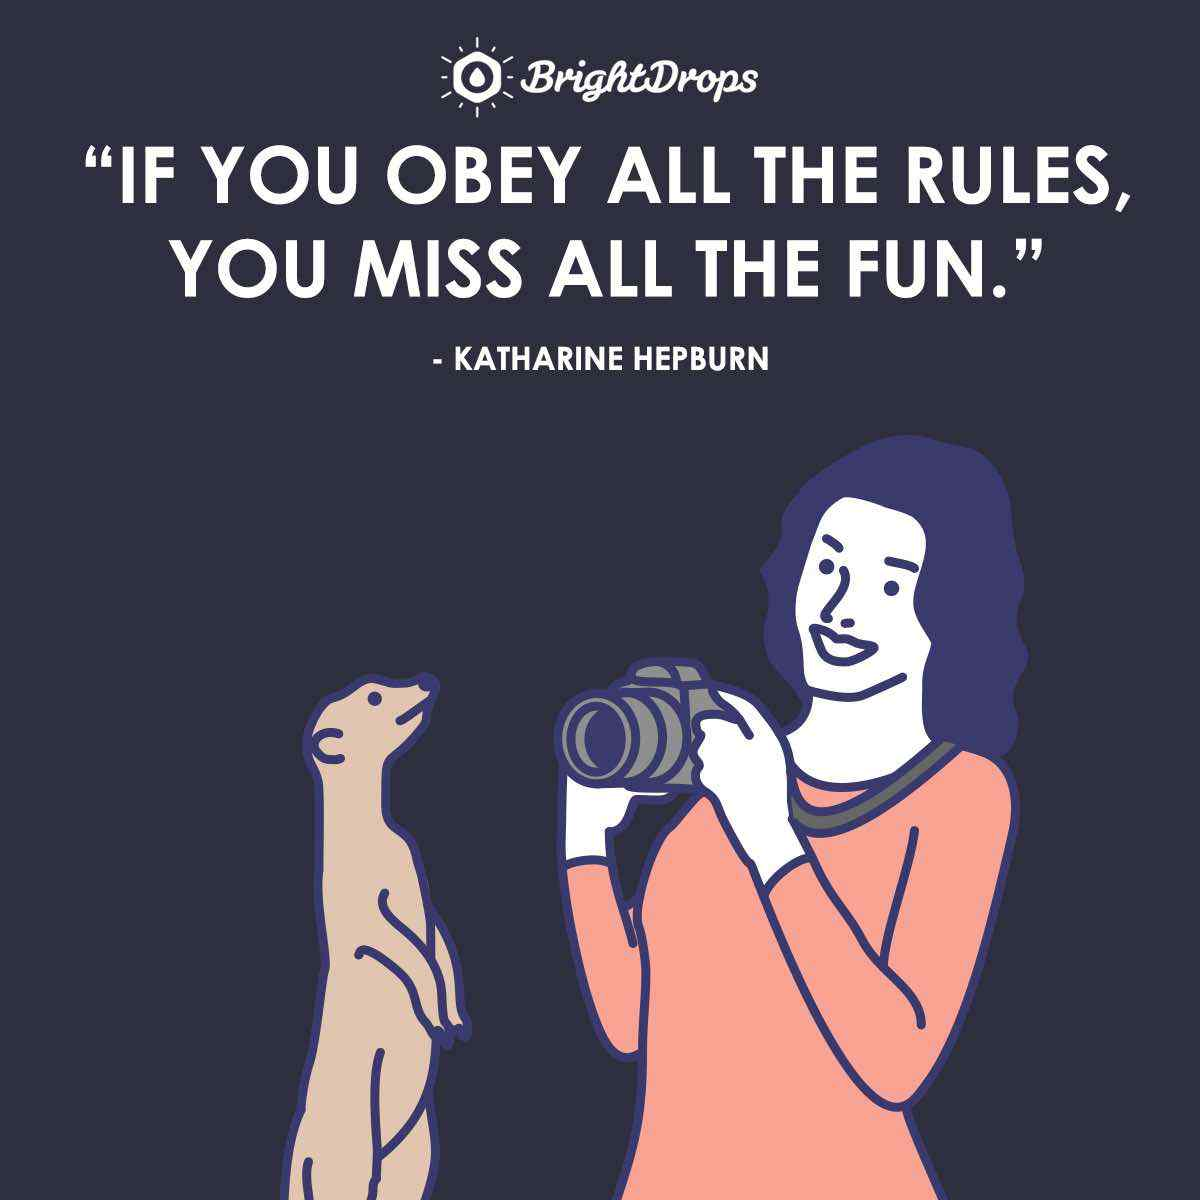 """If you obey all the rules, you miss all the fun."" ~ Katharine Hepburn"